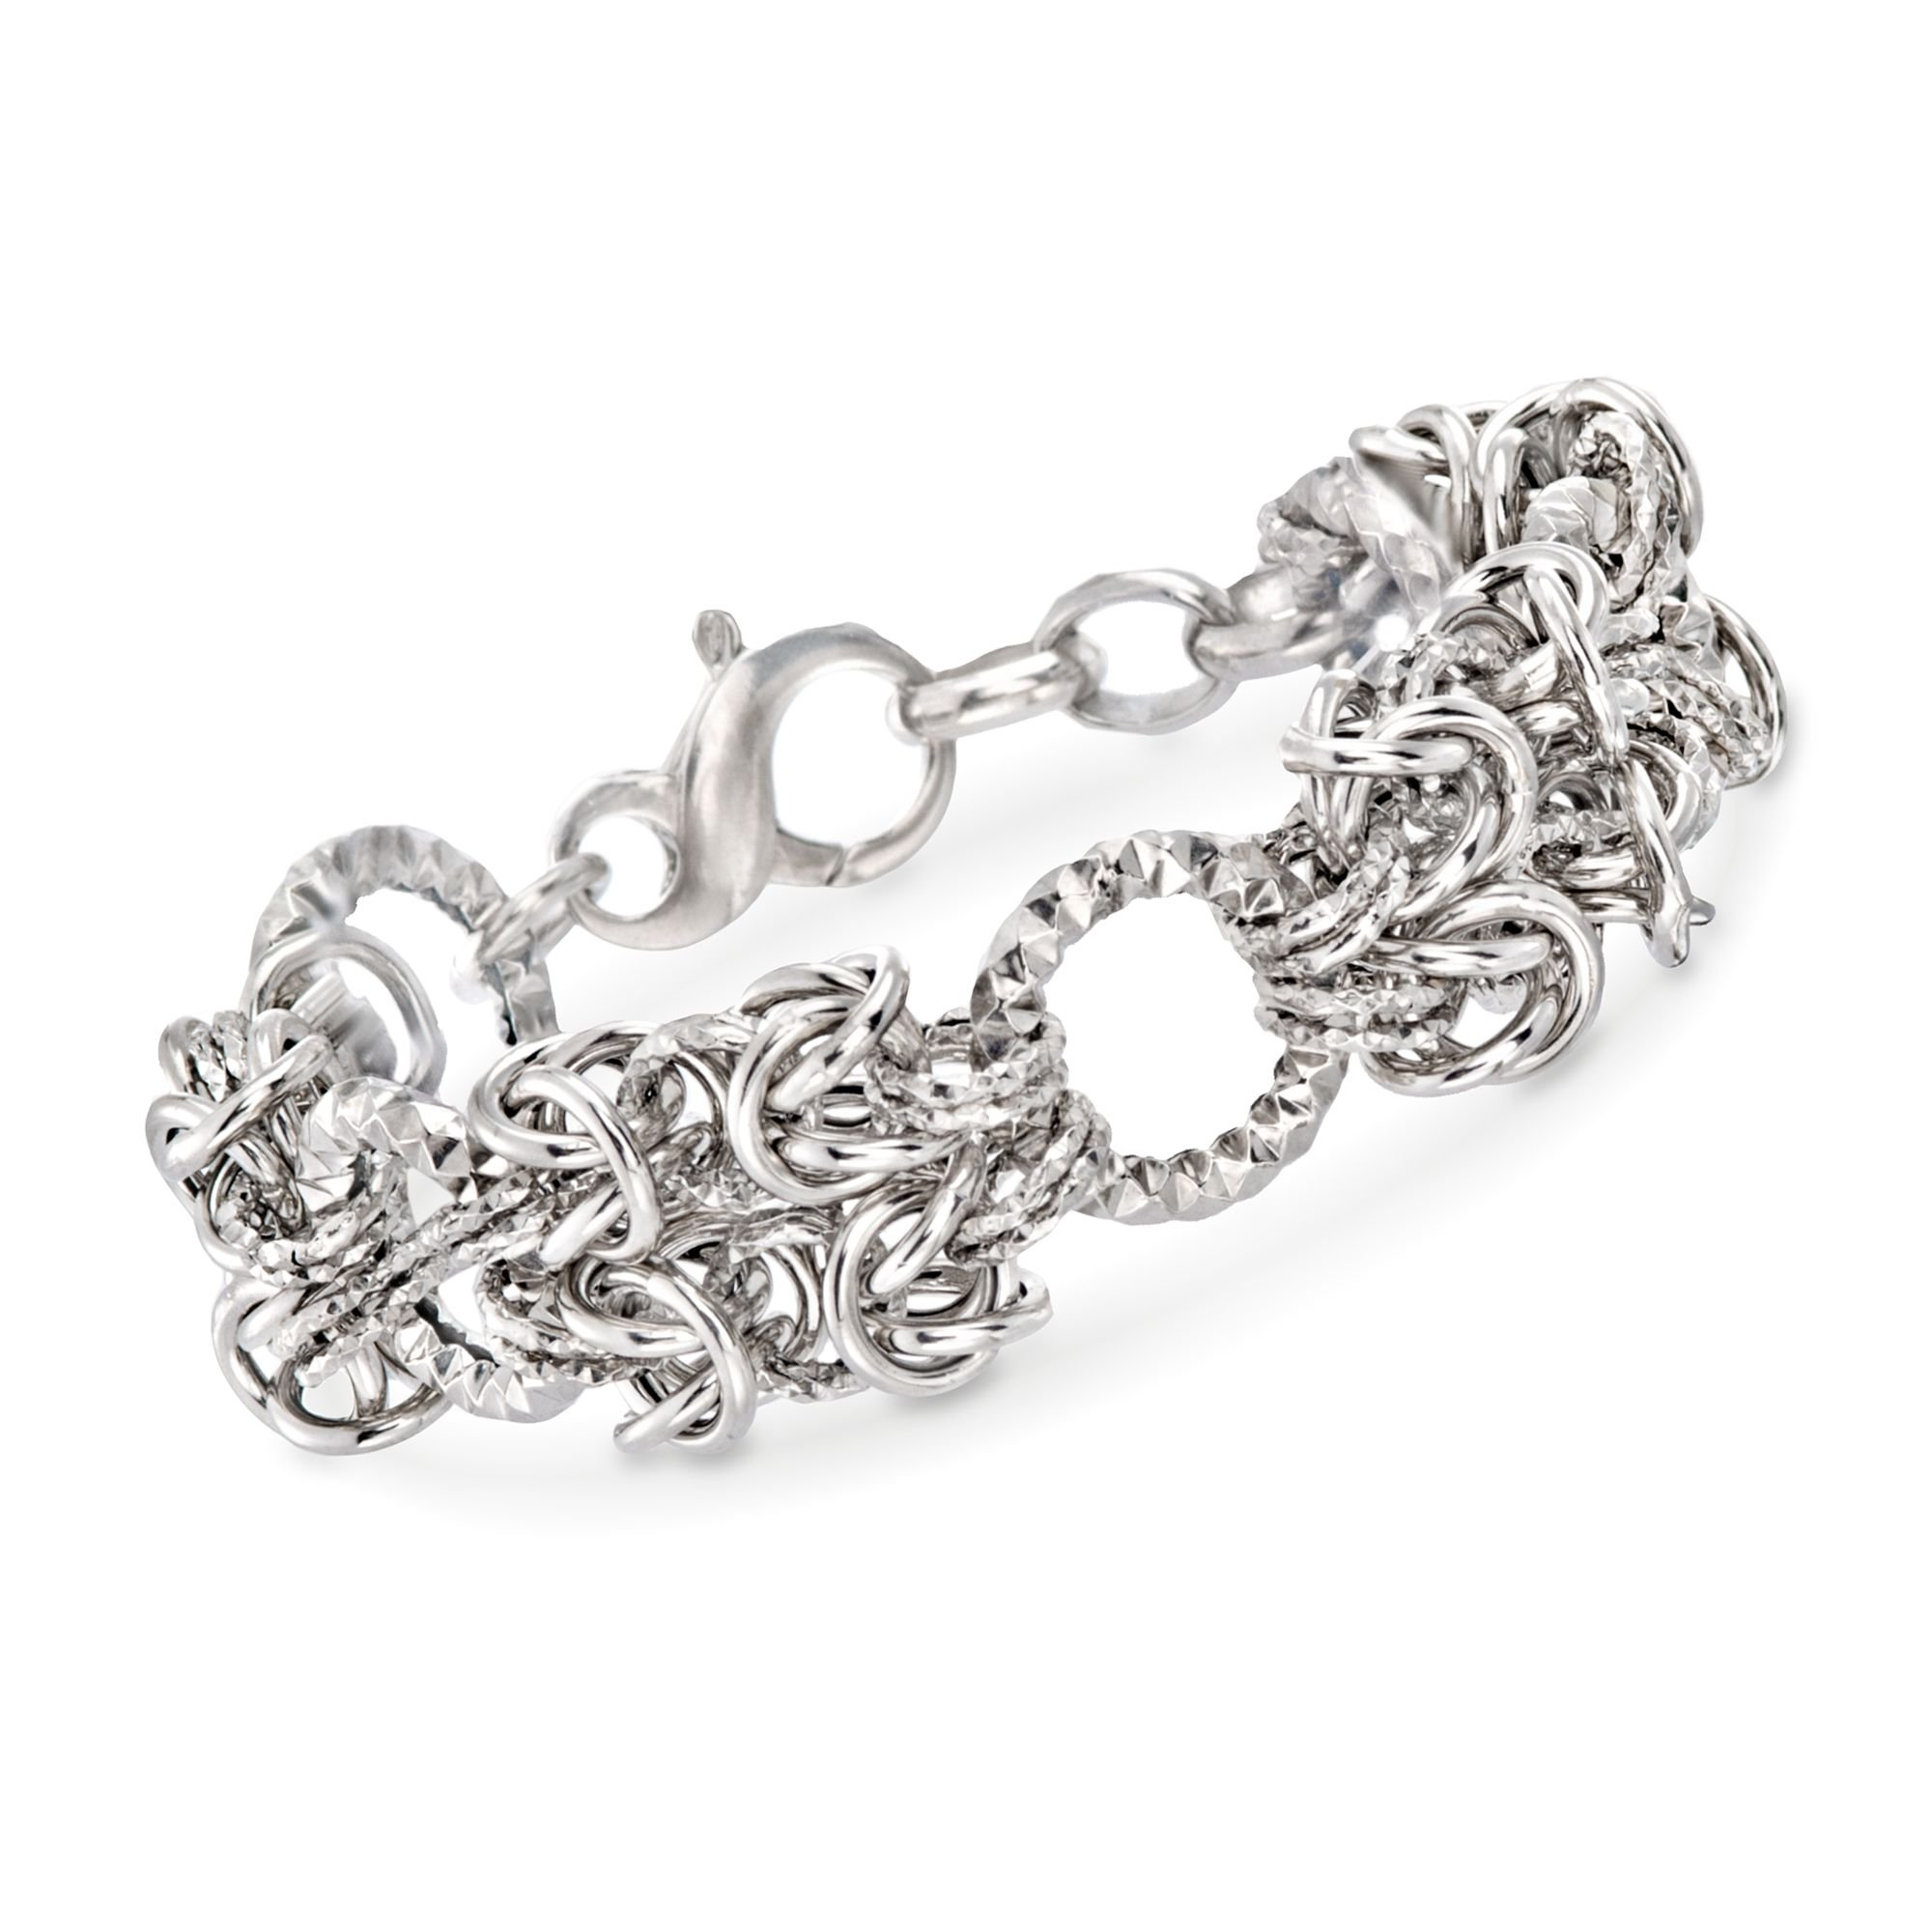 Ross-Simons Italian Sterling Silver Byzantine and Textured Circle Bracelet. 7.5''